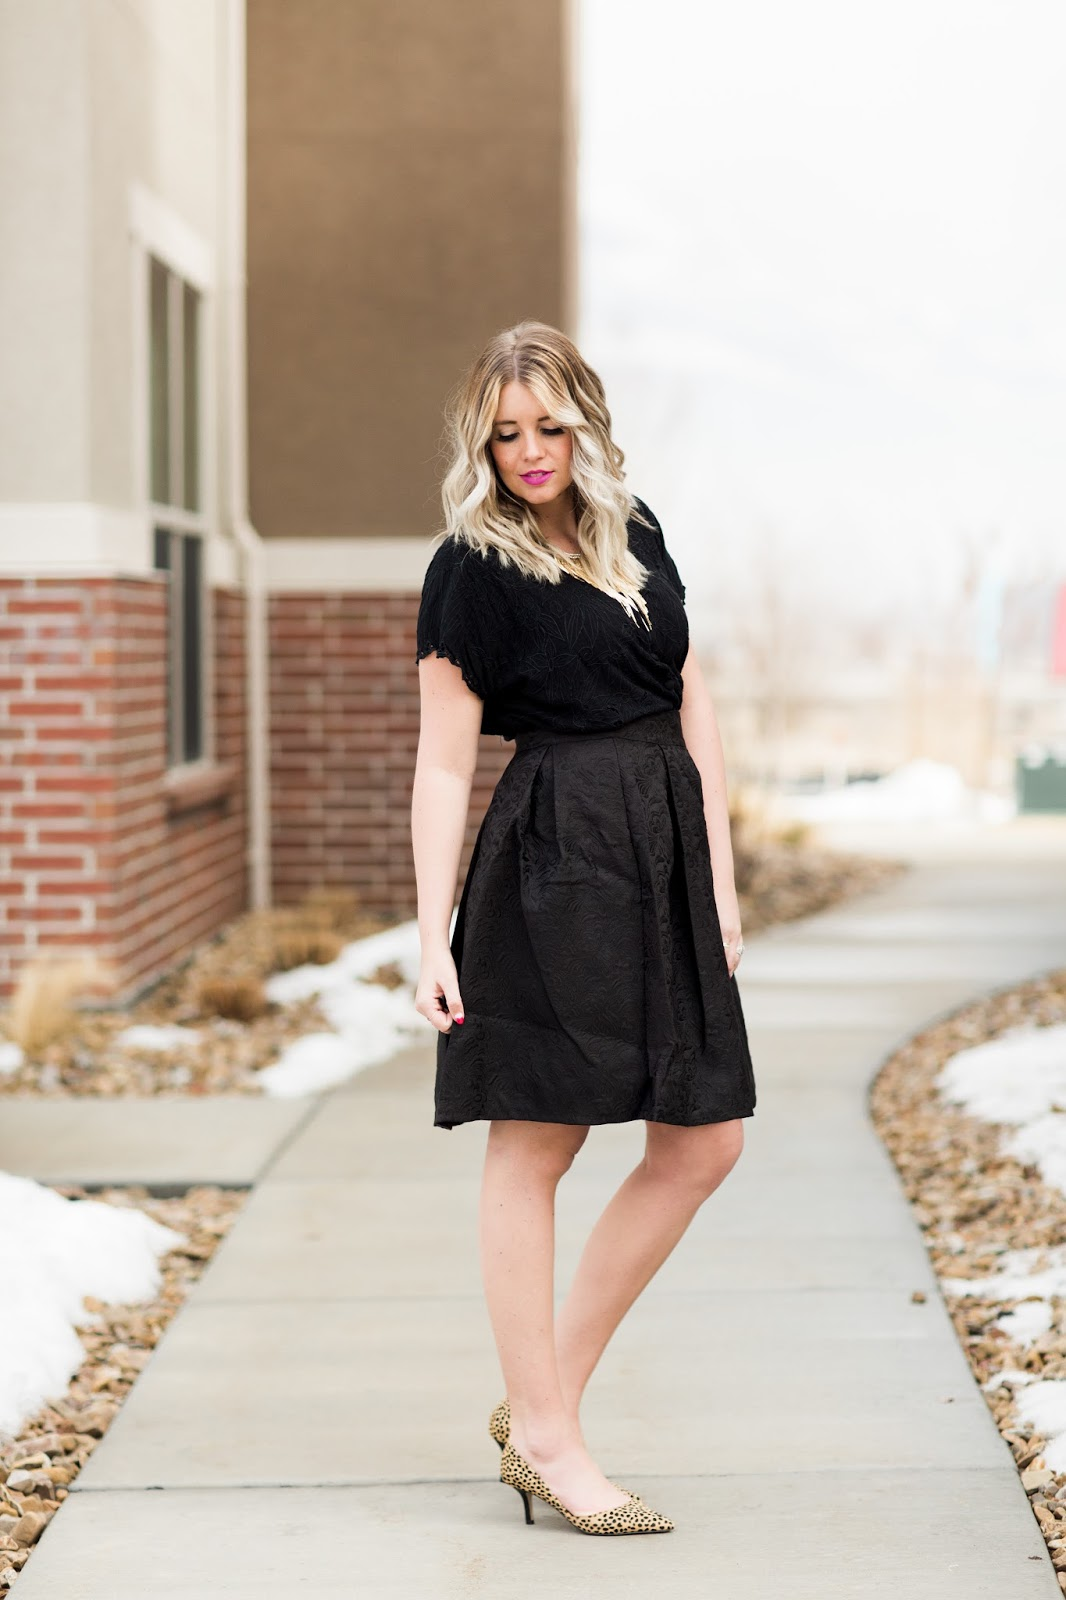 Cheetah Heels, Black Skirt, Tara Lynn's, Utah Fashion Blogger